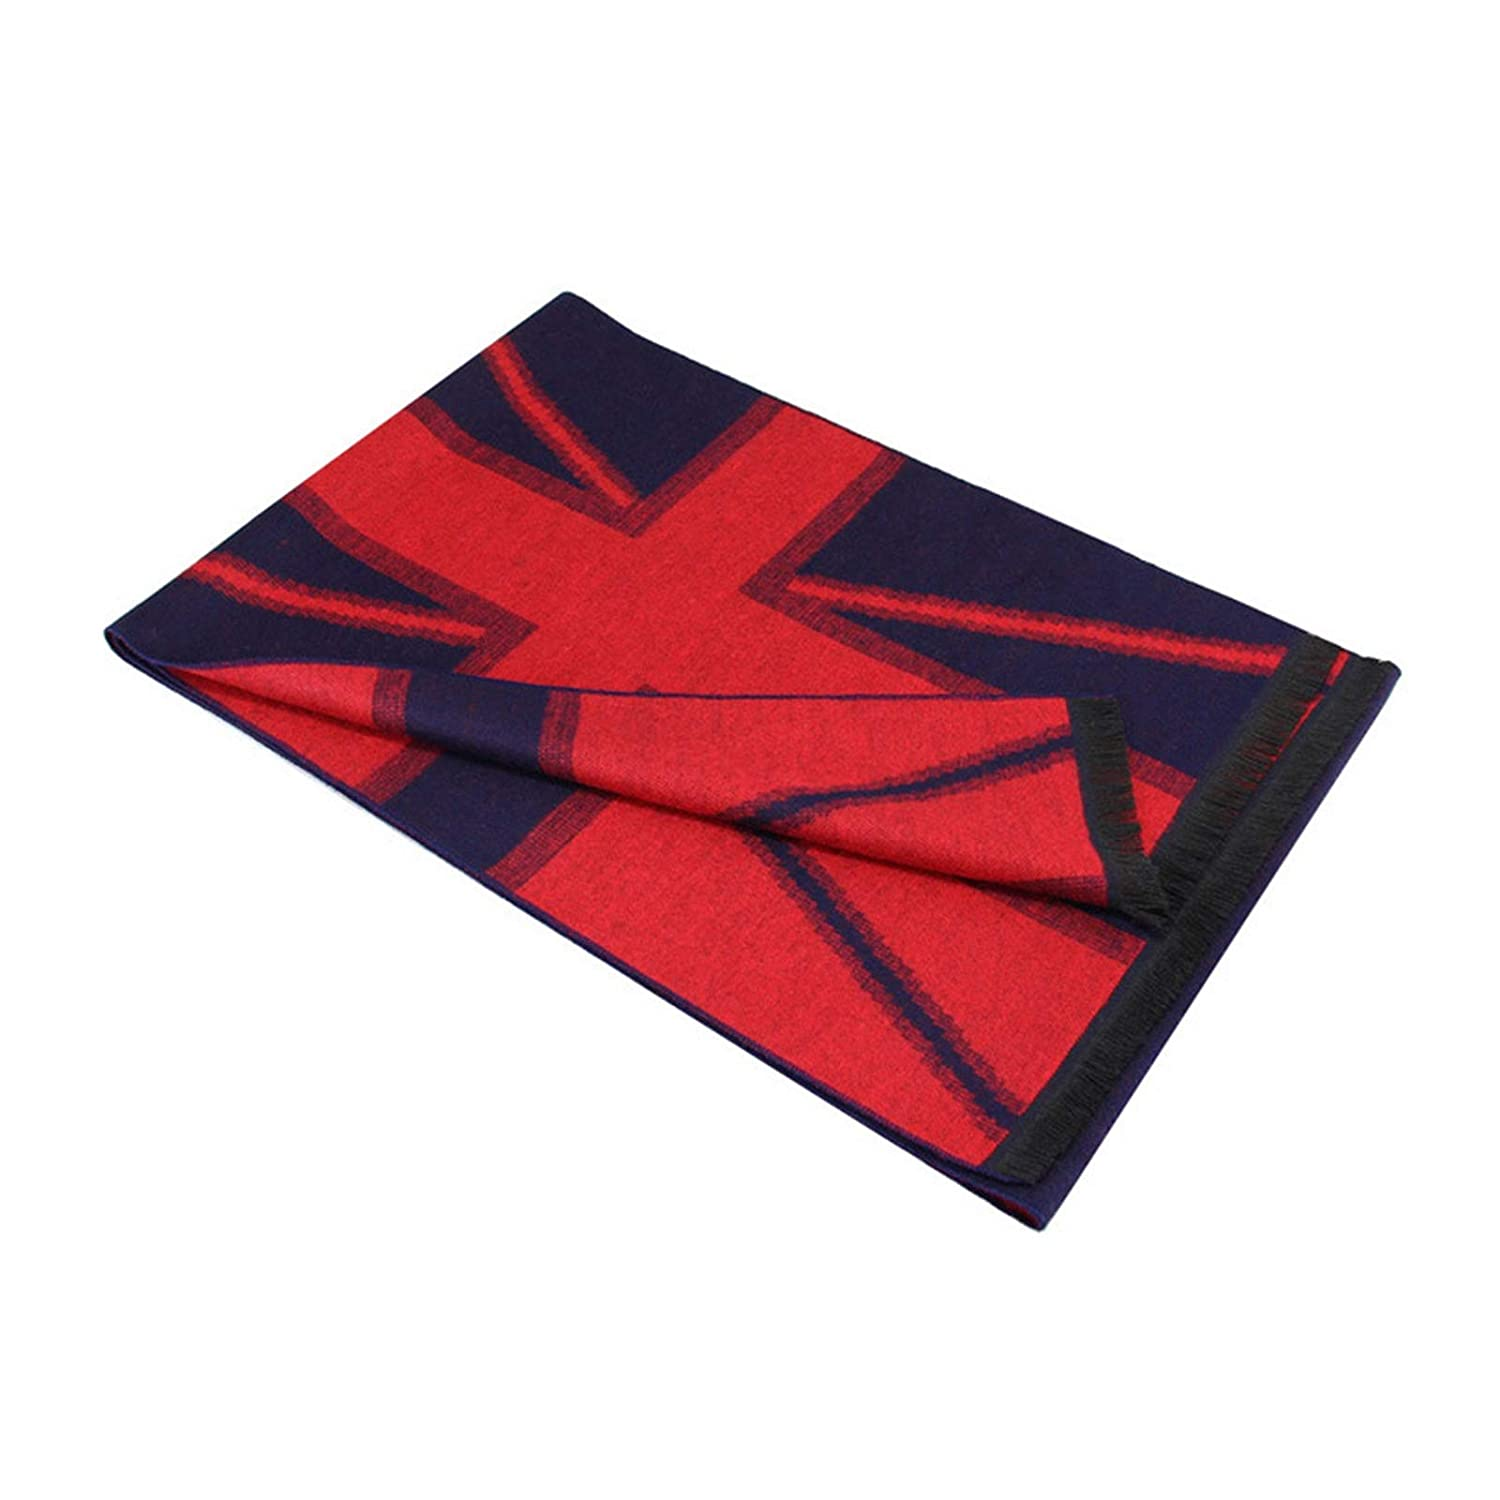 72 x 12 inch Cozy Soft Cotton US UK Flag Scarf for Men Women Gnzoe Scarf Winter Warm